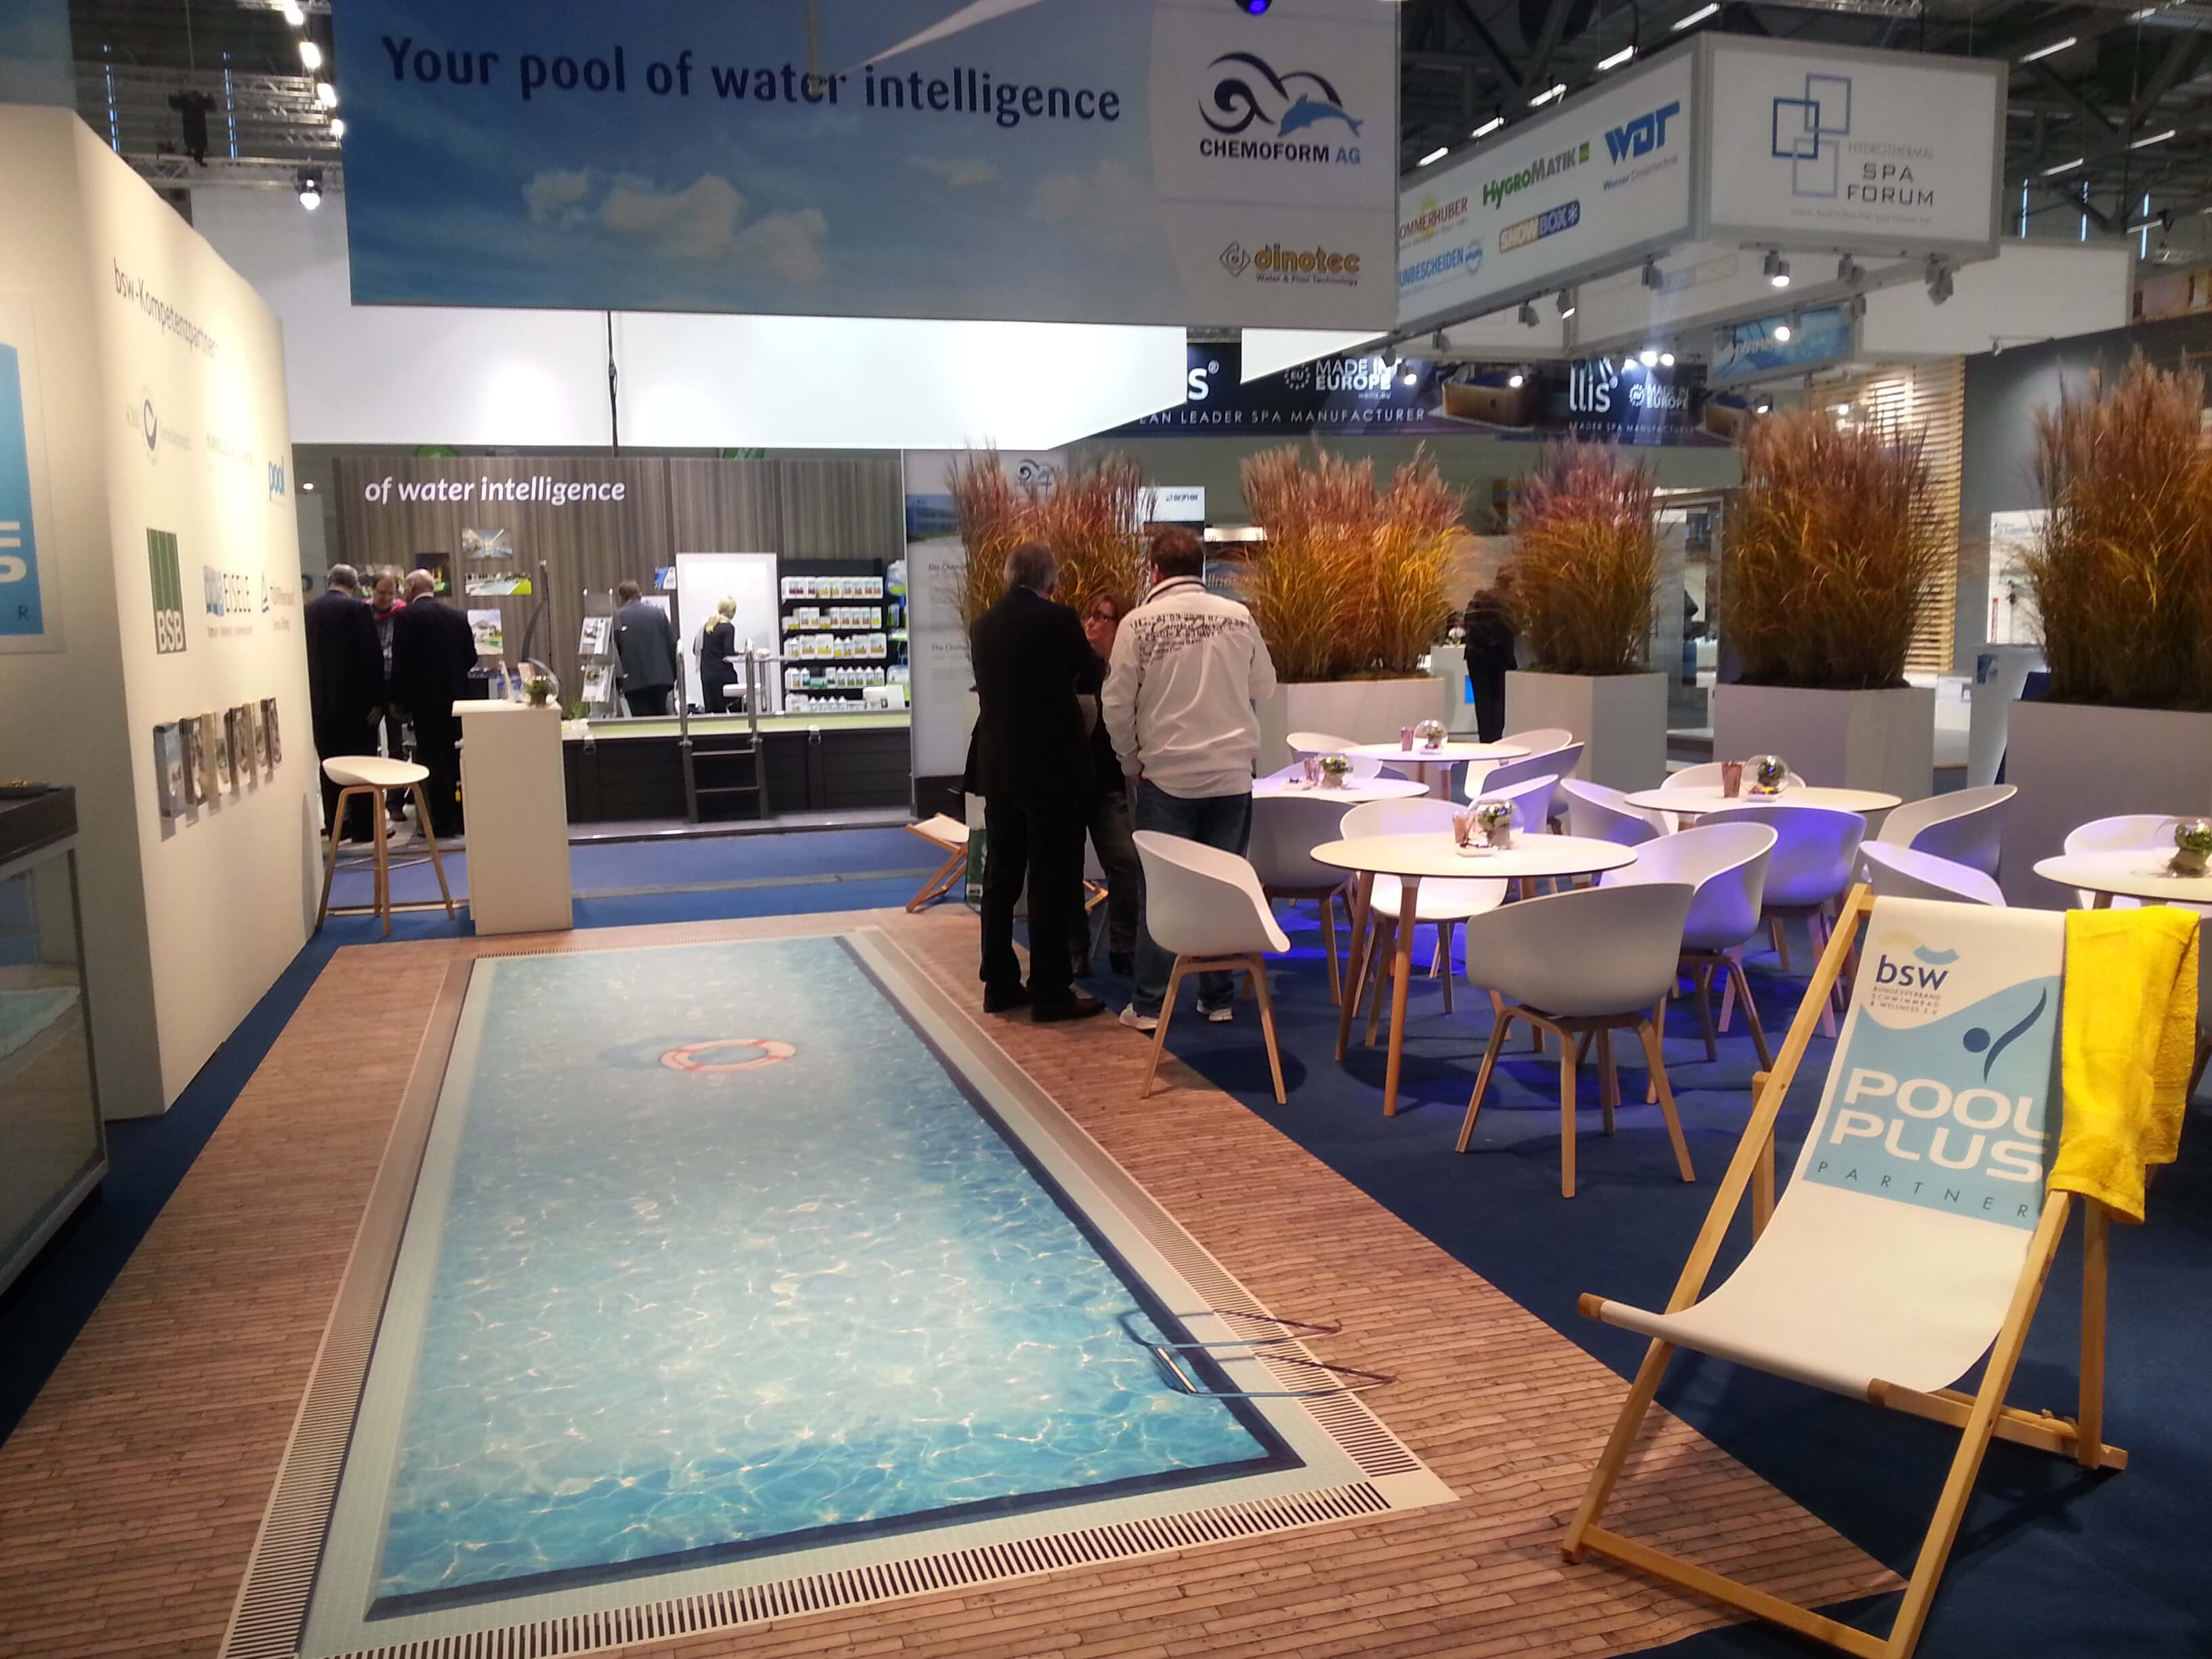 Die Ideale Messeattraktion: Messestand Mit Einem Pool